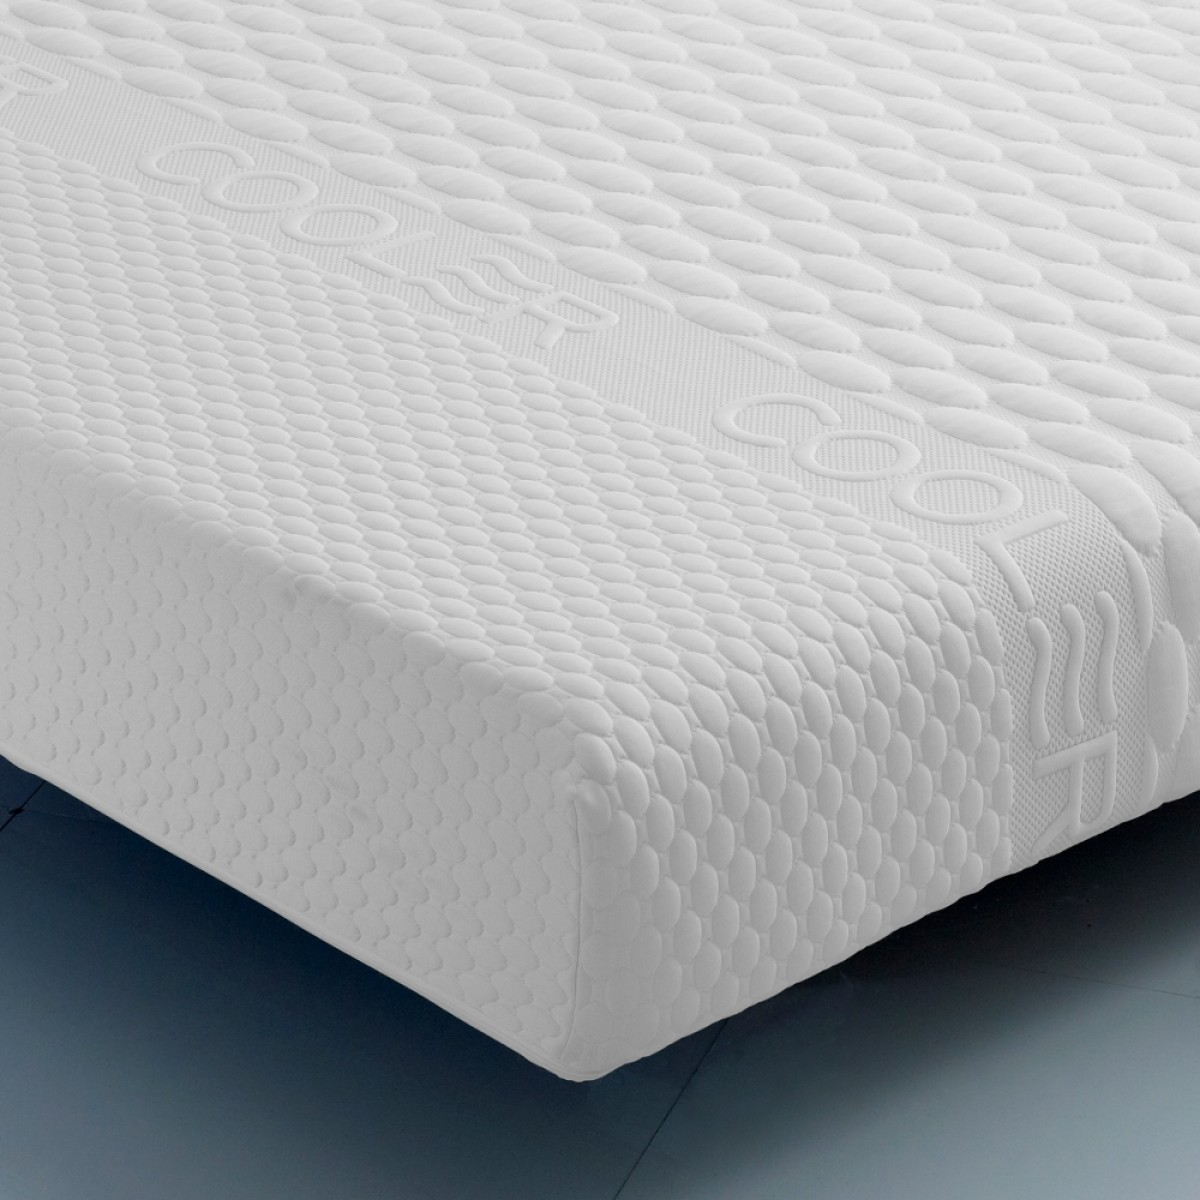 Deluxe Memory Spring Rolled Mattress